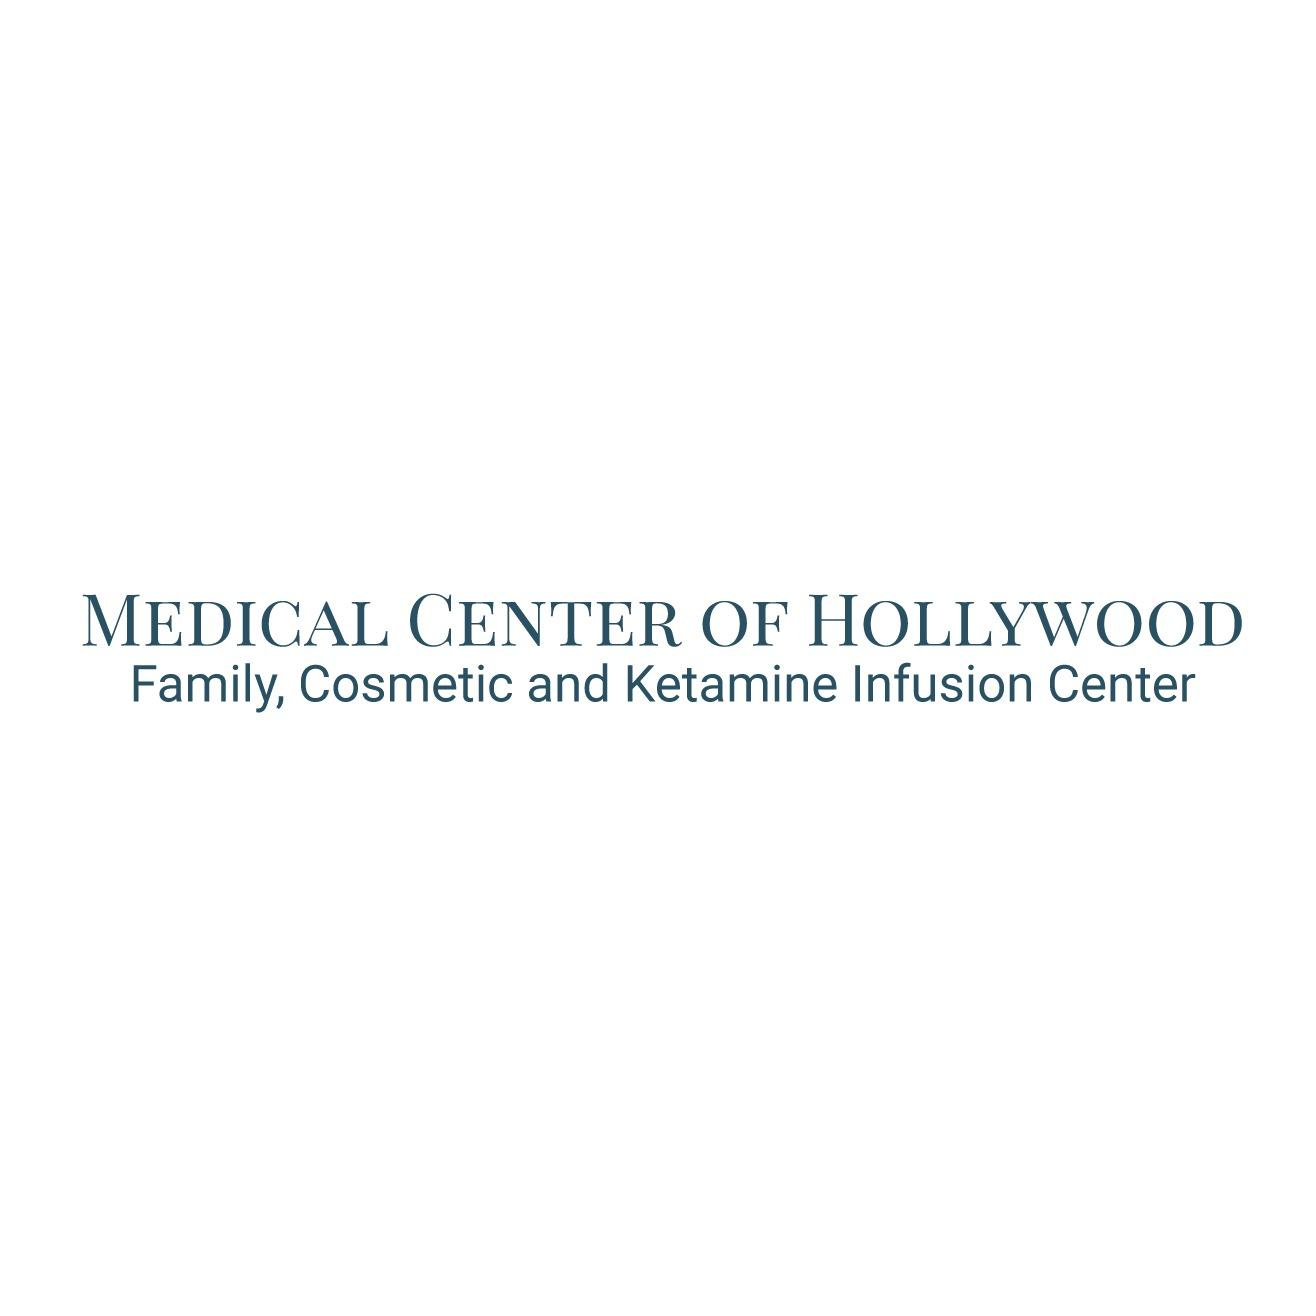 Medical Center of Hollywood - Family, Cosmetic and Ketamine Infusion Center